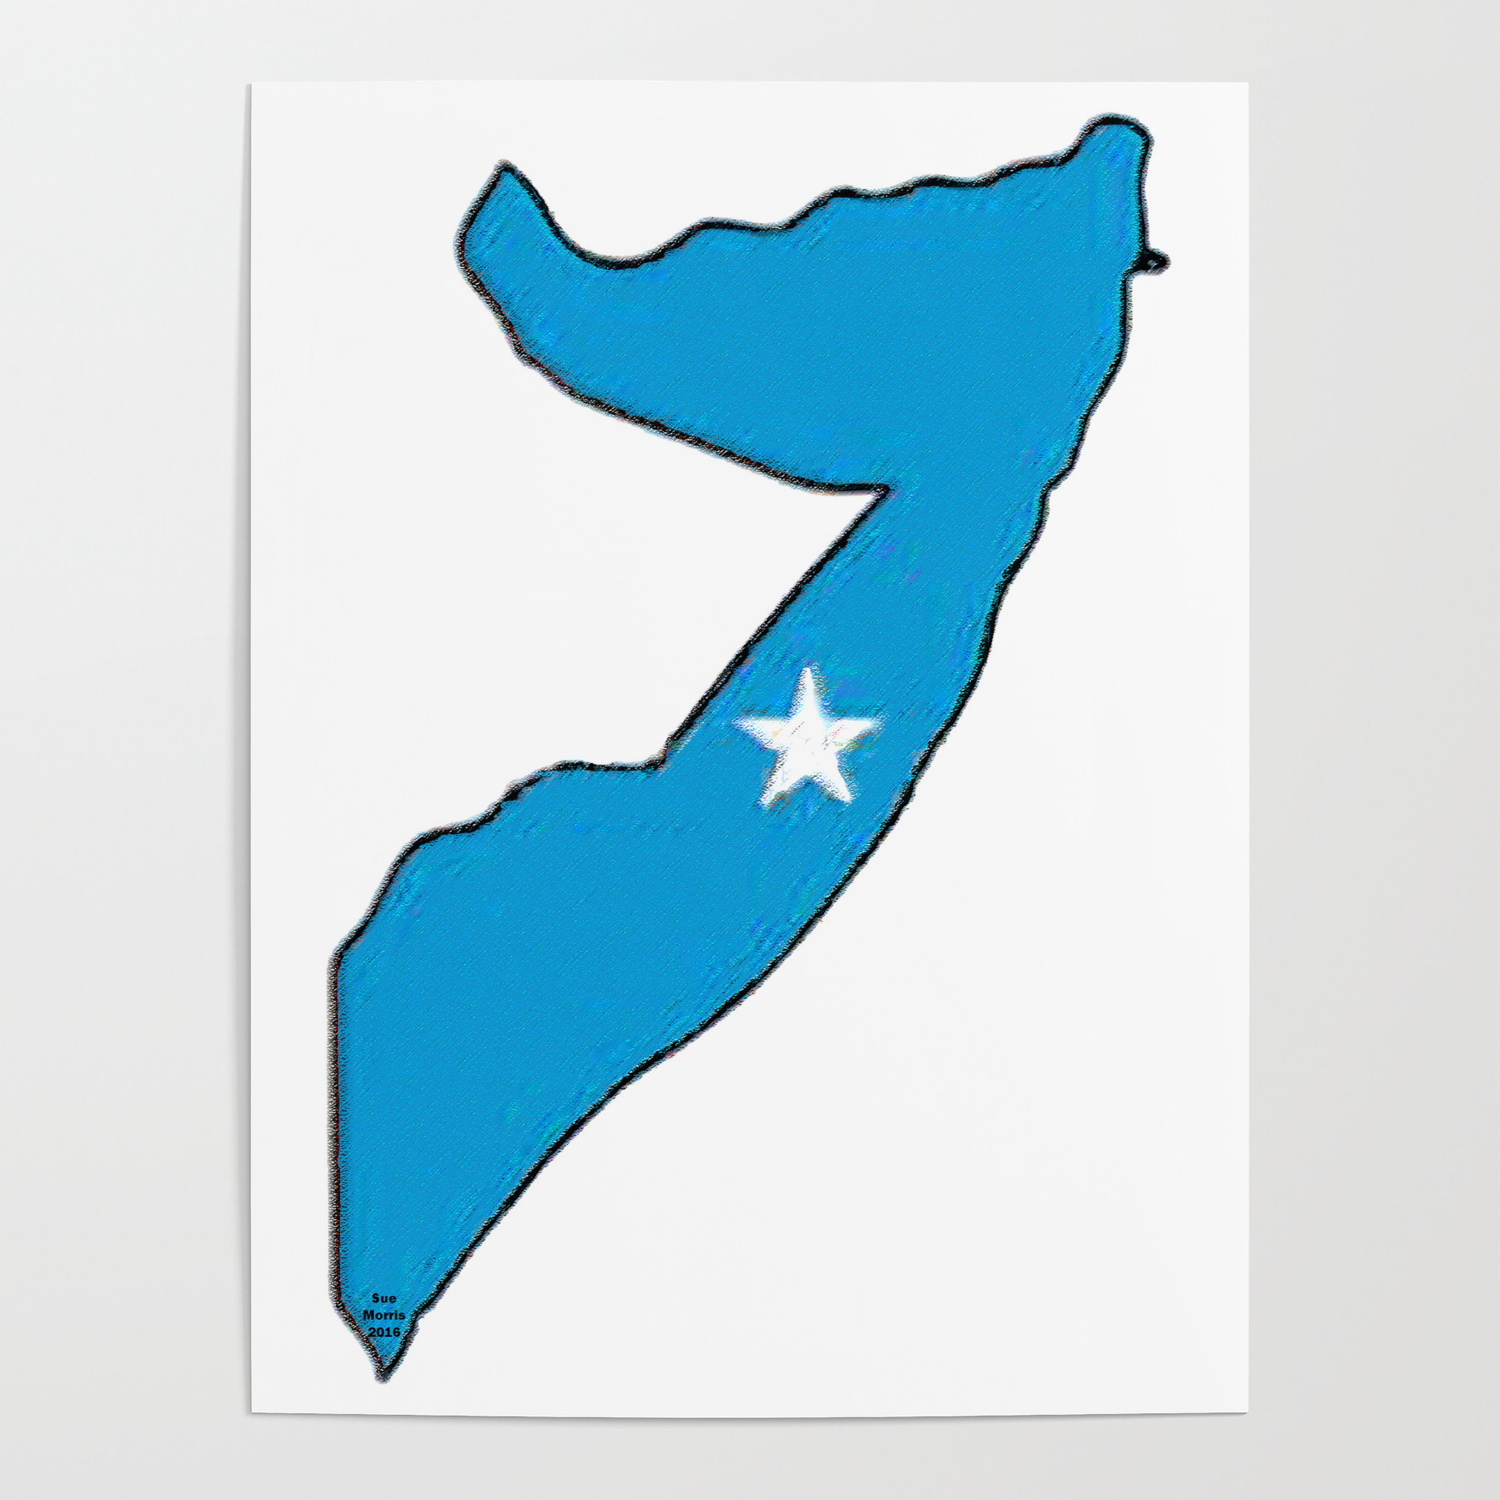 Somalia Map with Somali Flag Poster by havoc on create a pushpin map, bangladesh map, home map, pin map, general map, city map, orientation map, continent map, police map, strategy map, west africa map, game map, calendar map, food map, armenia map, class map, peru's map, economy map, church map, scroll map,